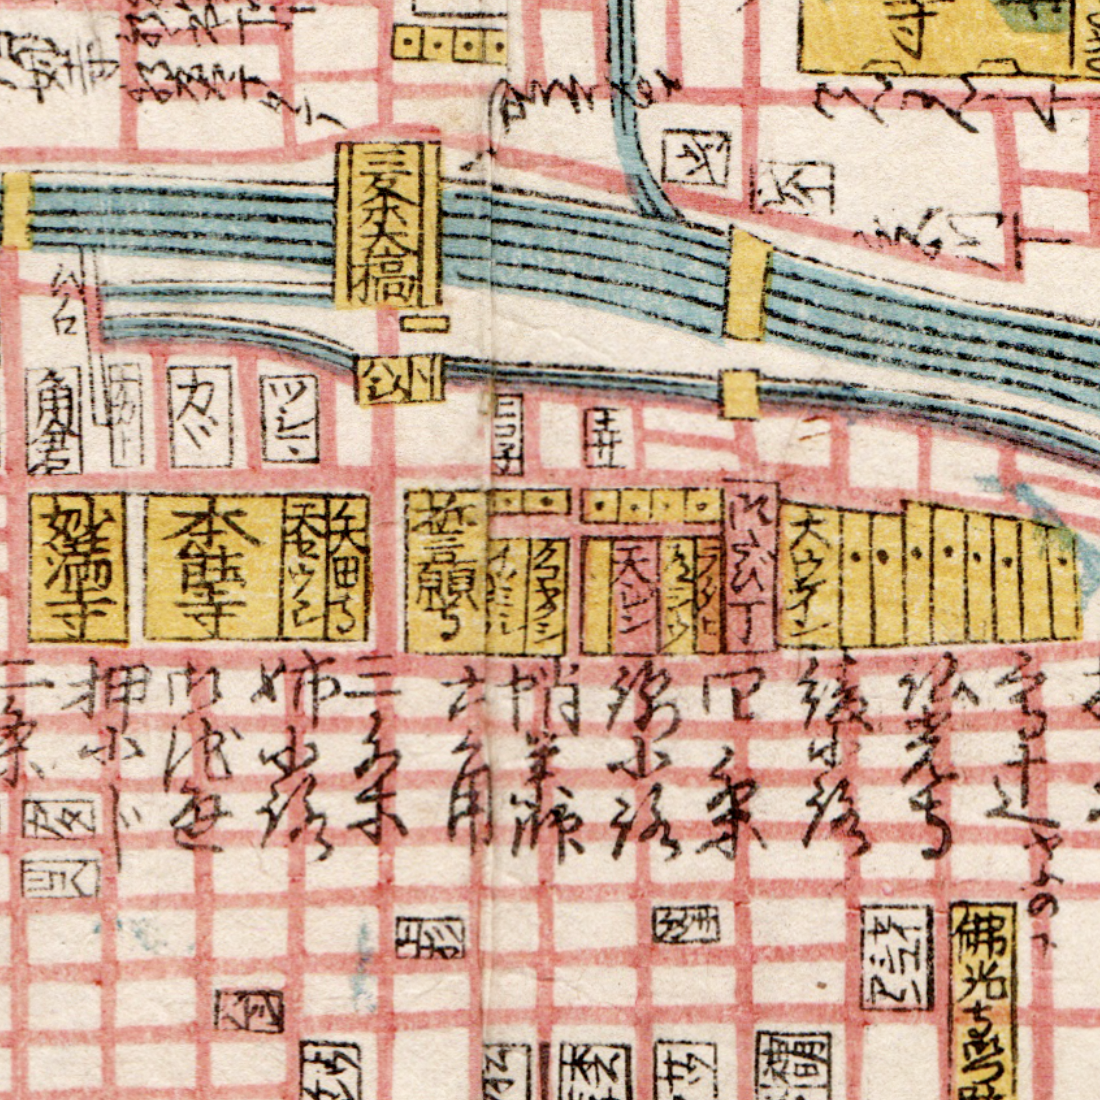 Takoyakushi Temple (marked here as タコヤクシ) still stands, but most of the temples (coloured yellow) on Teramachi Street (Temple Street) have disappeared or have had their lands shrunken.  Honno-ji 本能寺, marked here as being north of Sanjo-dori Avenue (三条通), has since moved south. The land it used to be on became Kyoto City Hall in 1927.